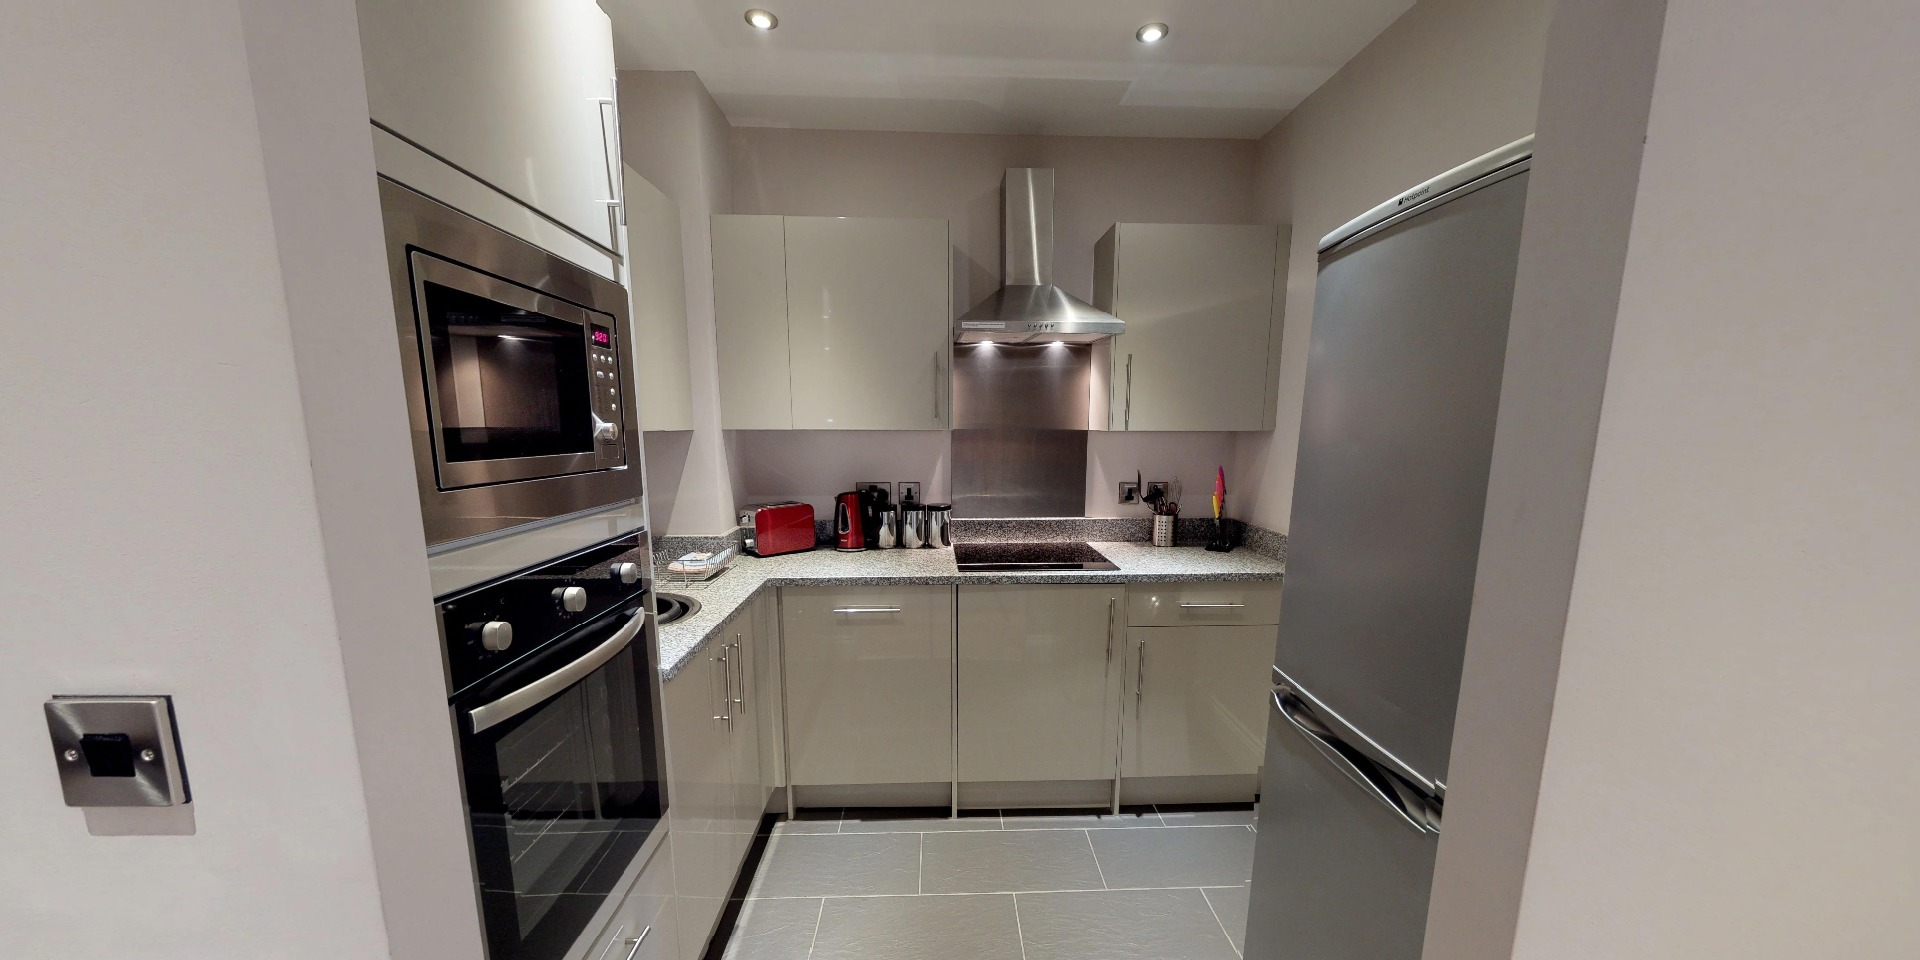 Harrogate Lifestyle Apartments one bedroom apartments to rent in Harrogate North Yorkshire